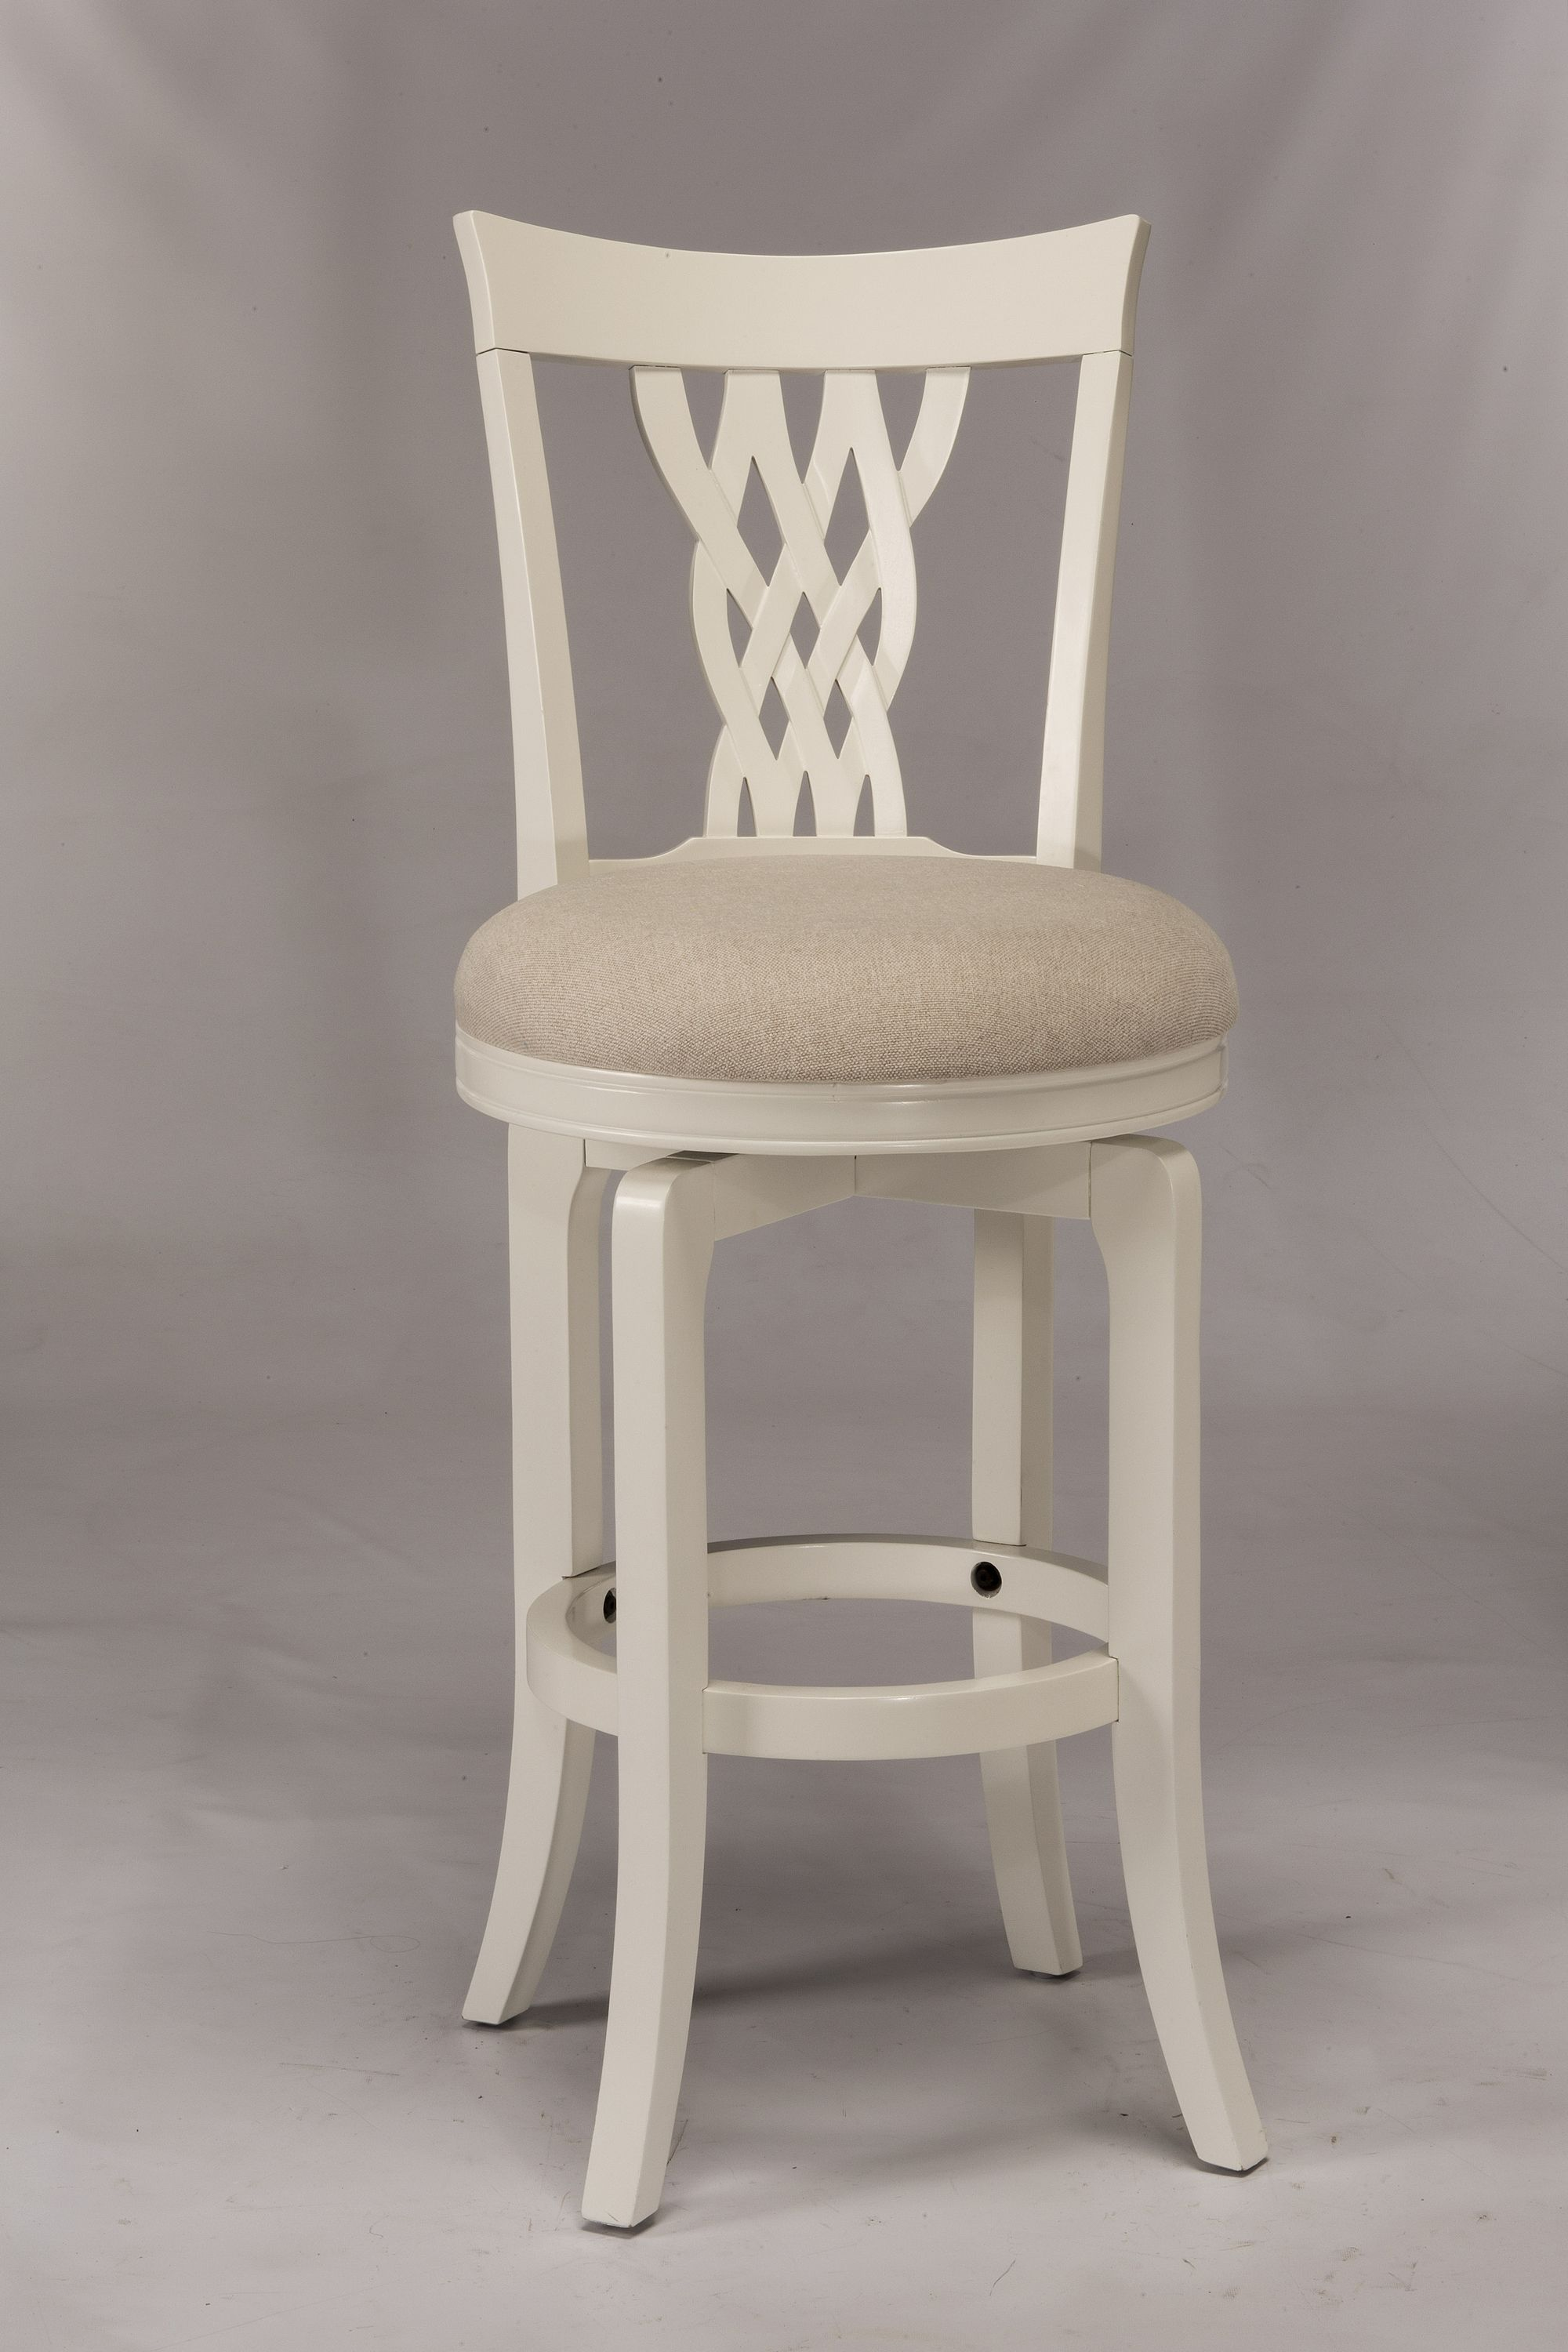 Wood Stools White Swiveling Counter Stool With Braided Wooden Back